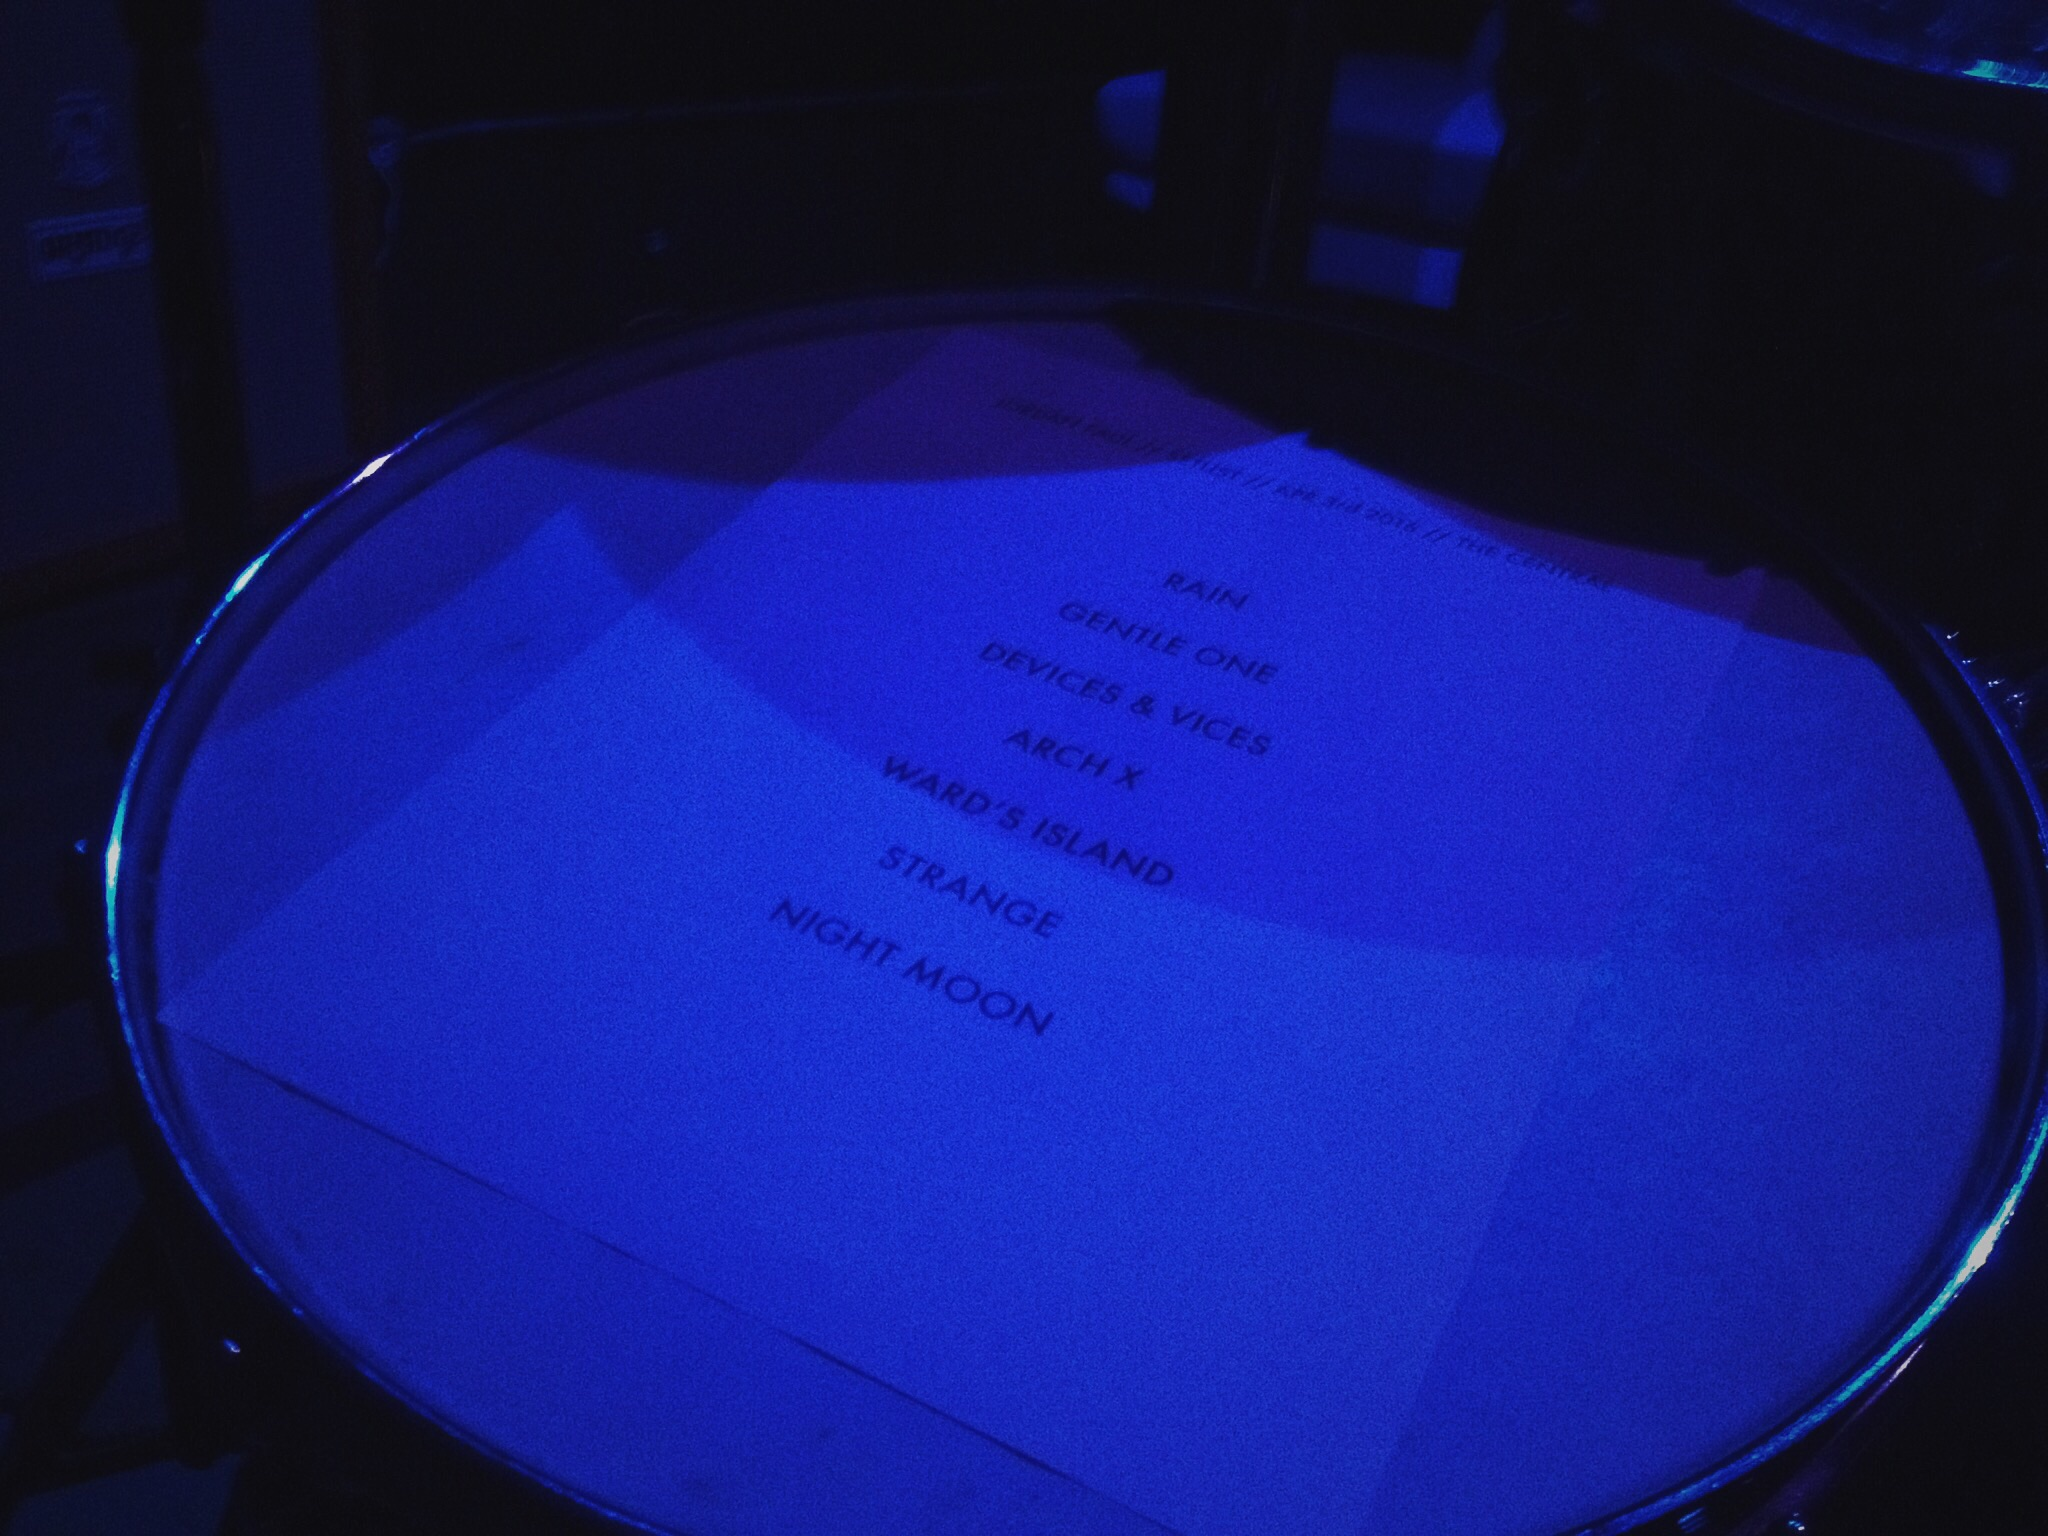 Set list from last night at The Central